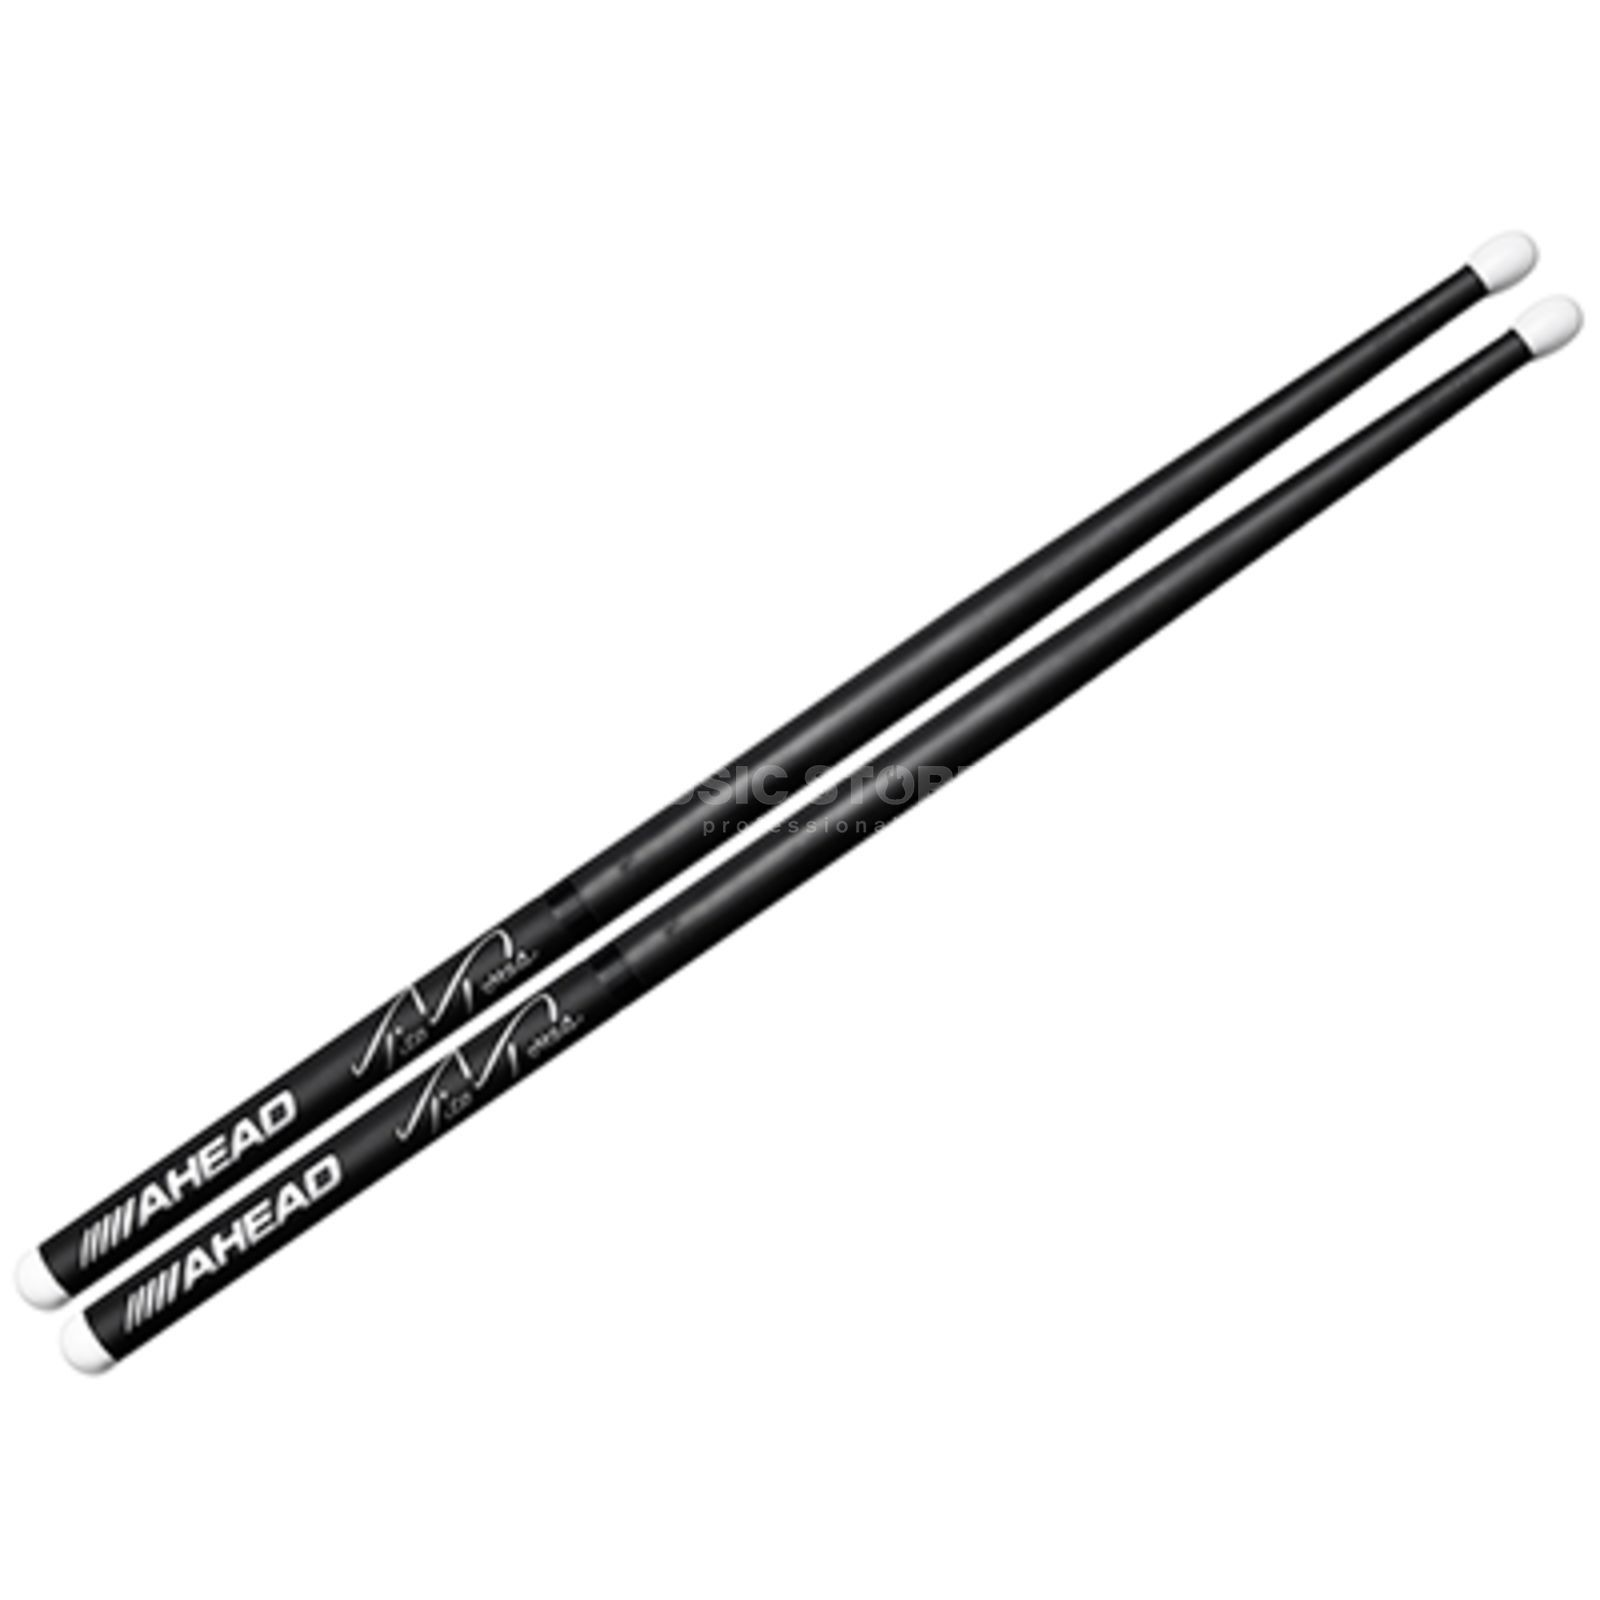 Ahead Sticks TT Tico Torres Alu-Sticks Long Taper Produktbild